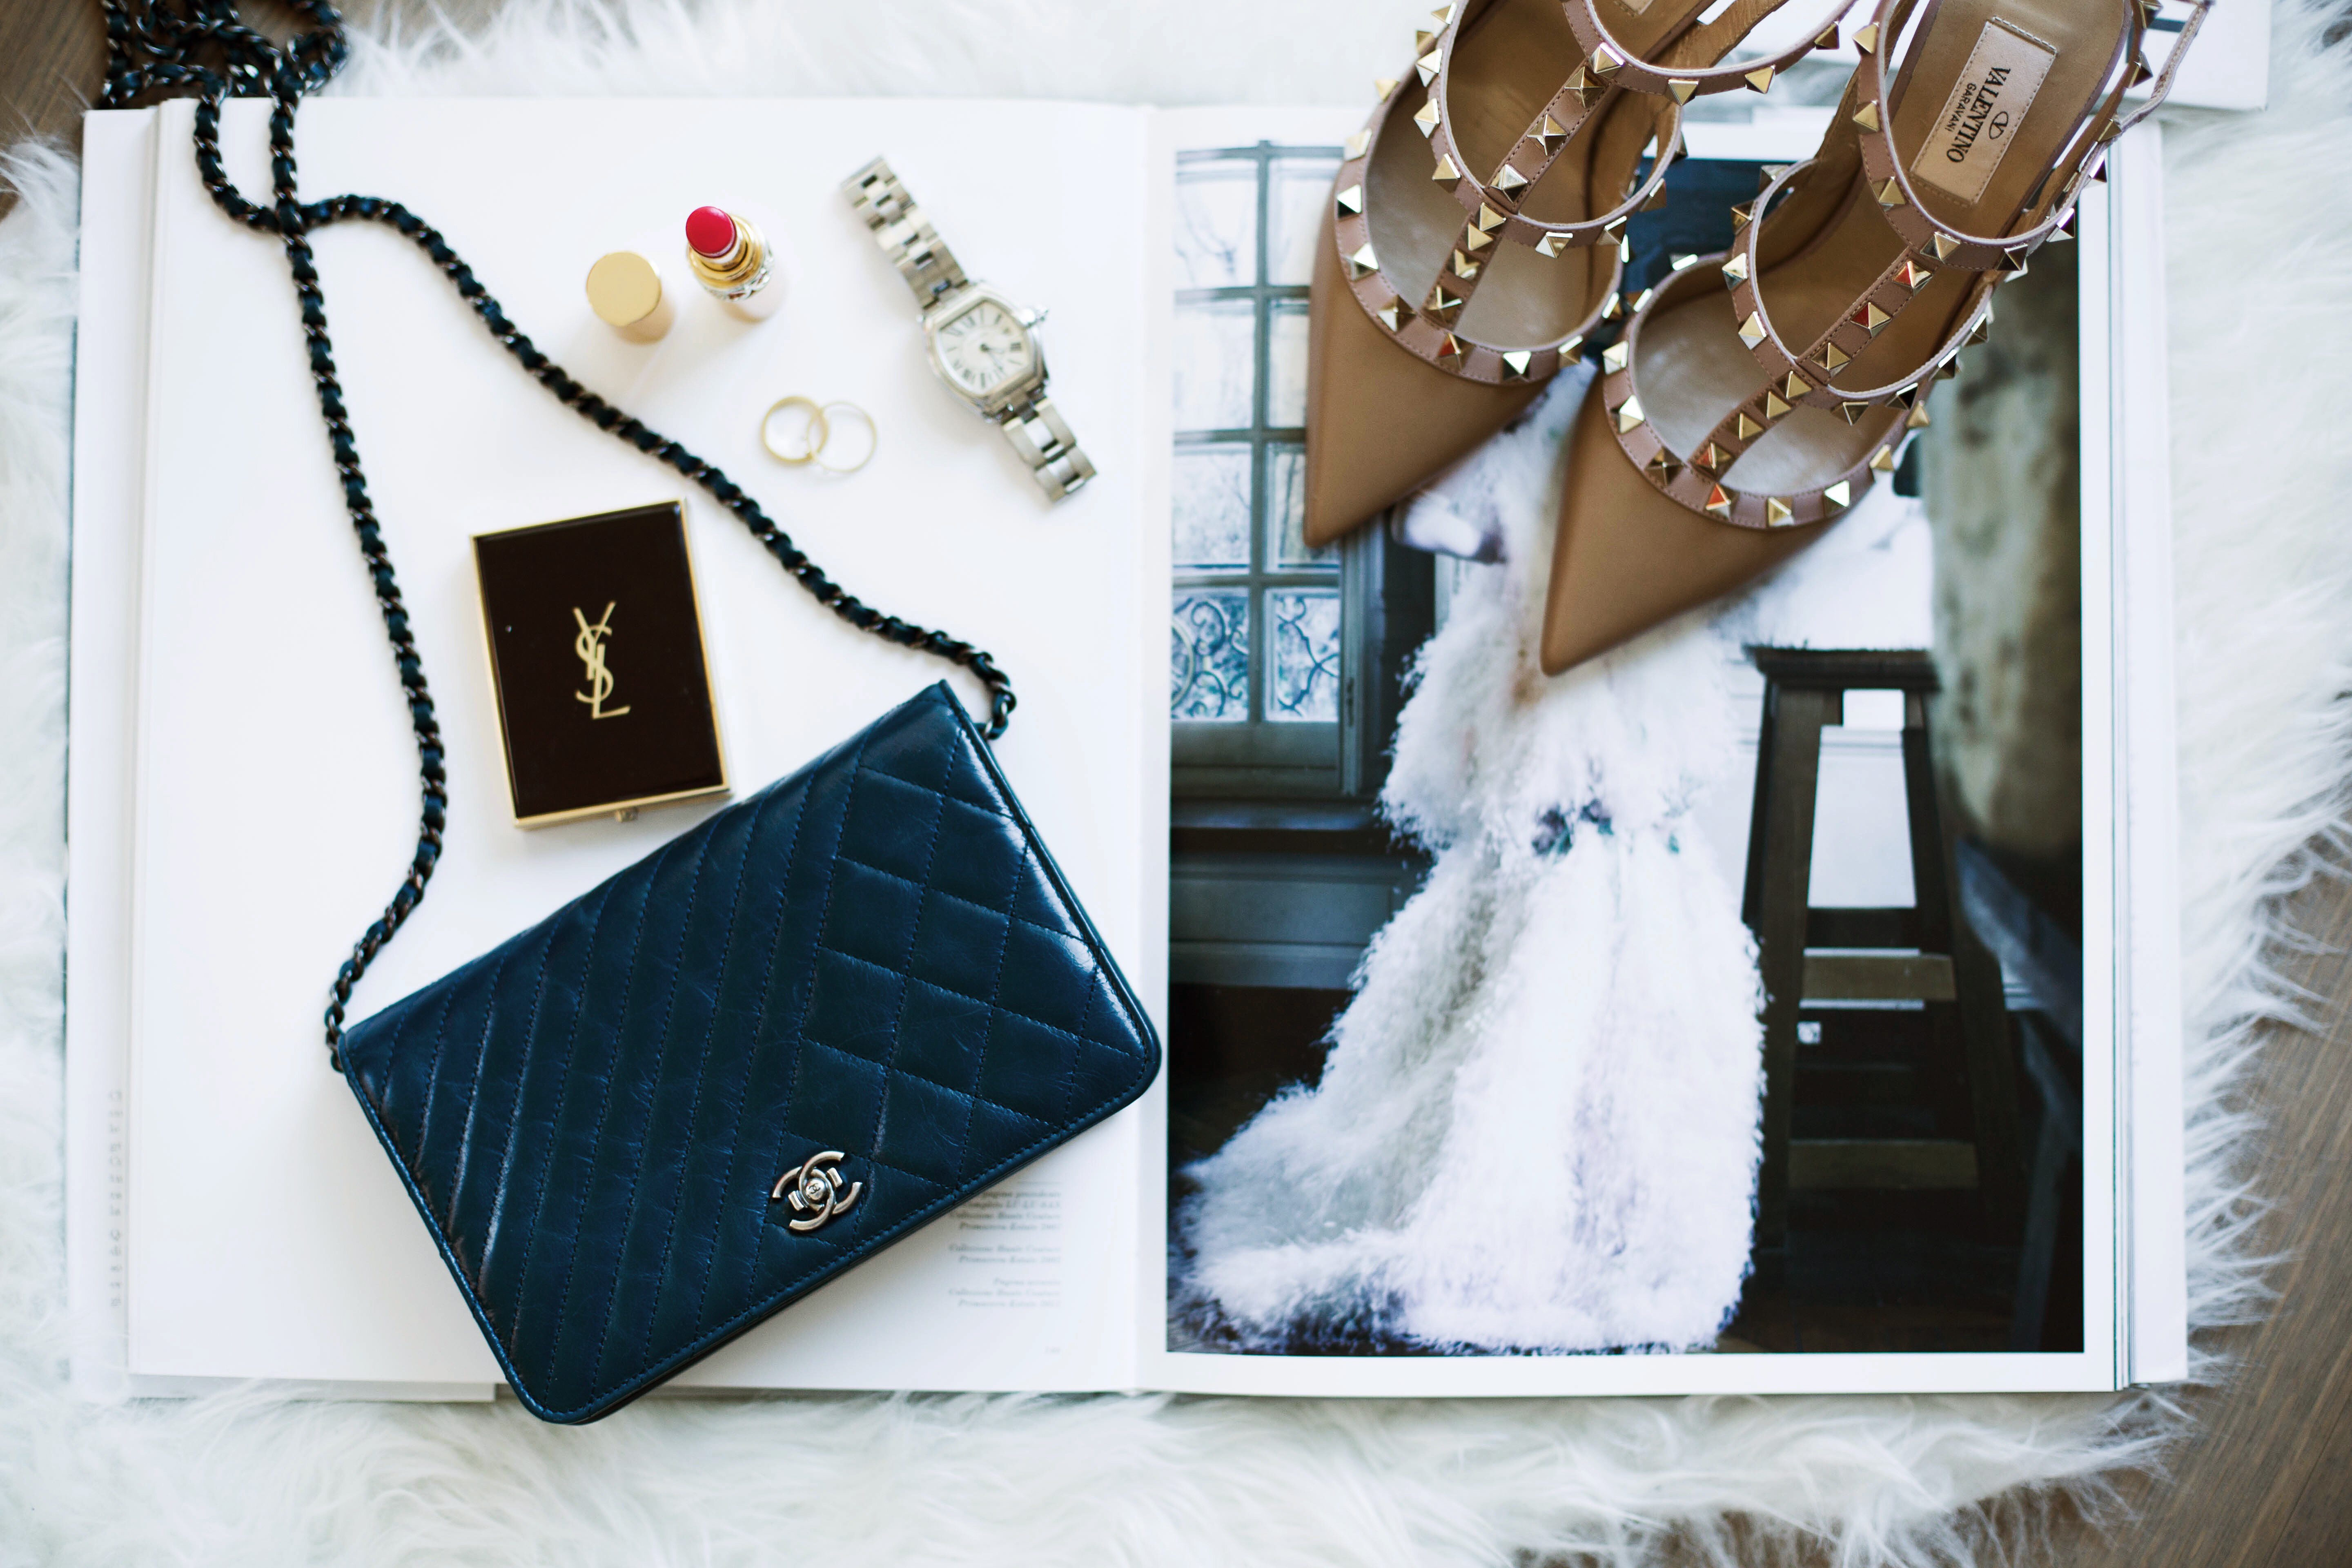 Chanel Bag How To Score Designer Pieces